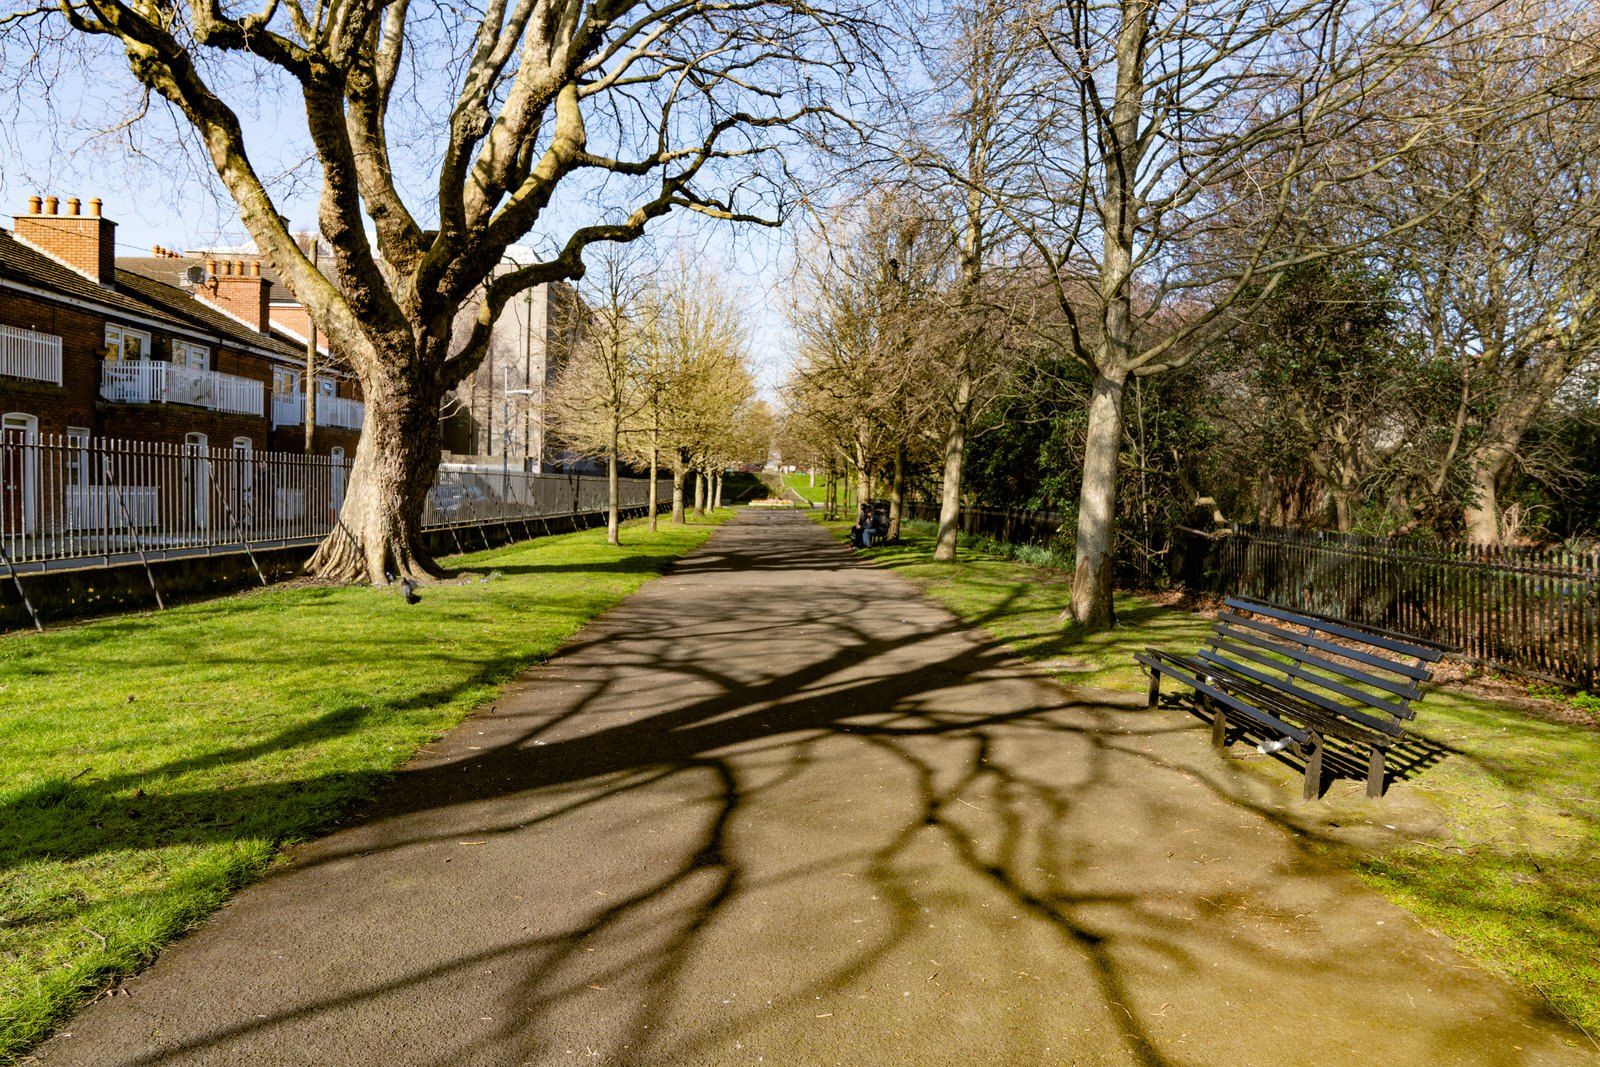 BLESSINGTON-BASIN-PUBLIC-PARK-SOCIAL-DISTANCING-MAY-NOT-HAVE-BEEN-AS-GOOD-AS-IT-NEEDS-TO-BE-160711-1